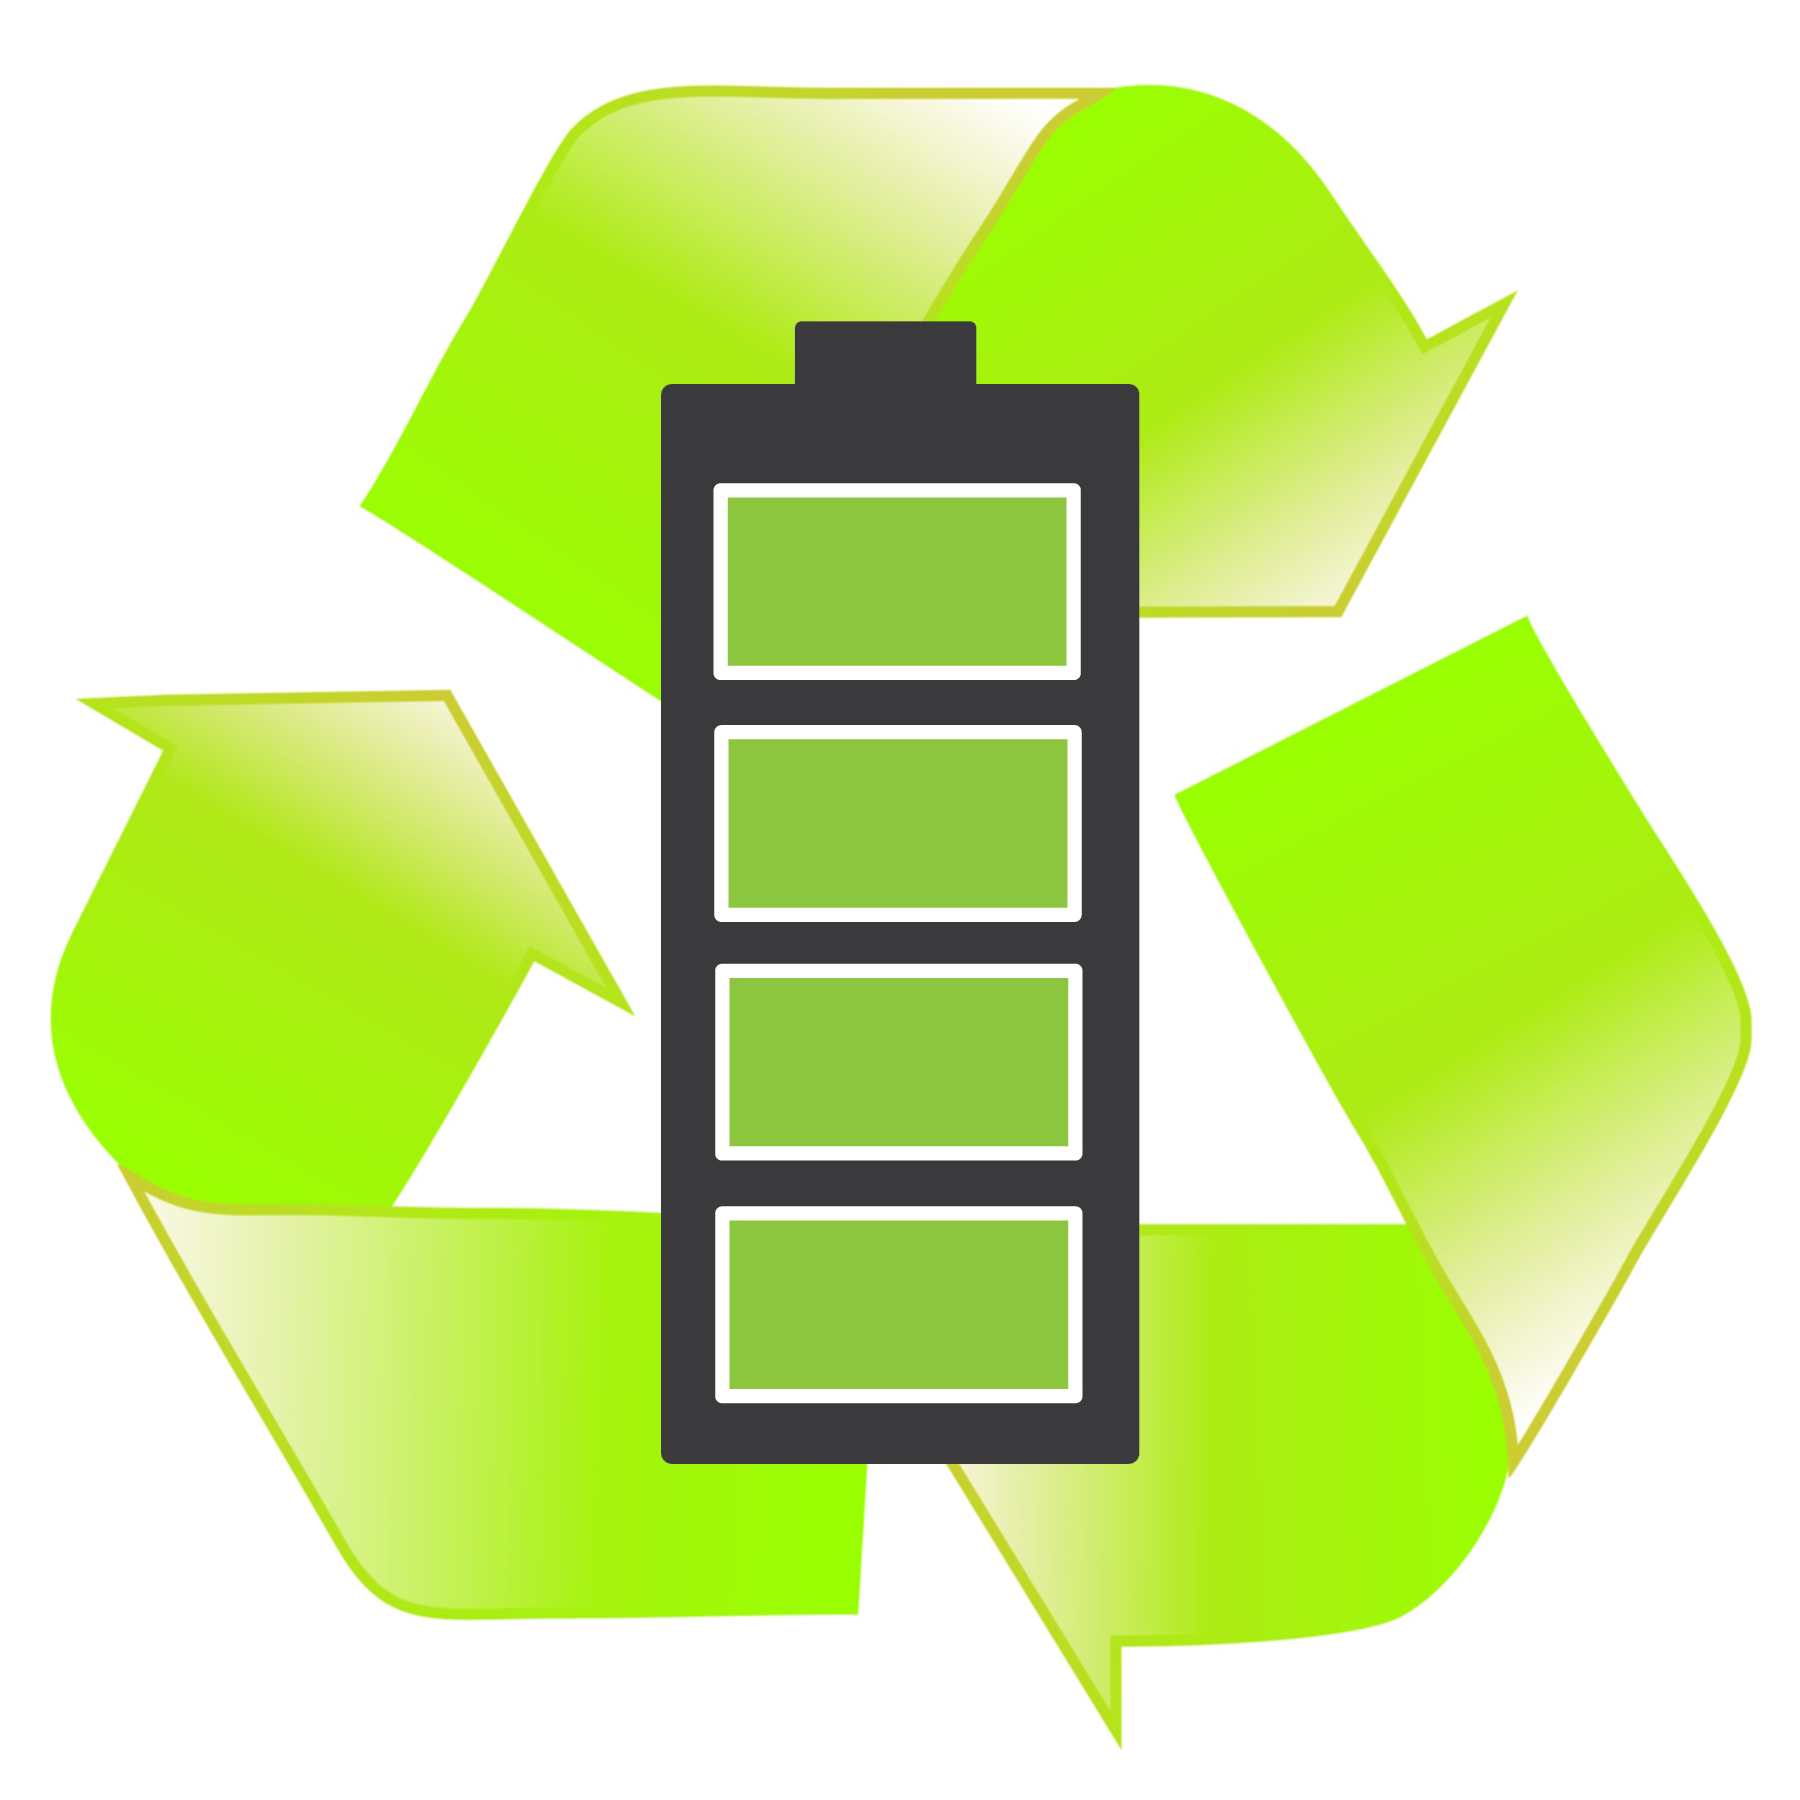 Recycling images free download best recycling images on 1800x1800 the danger of not recycling batteries biocorpaavc